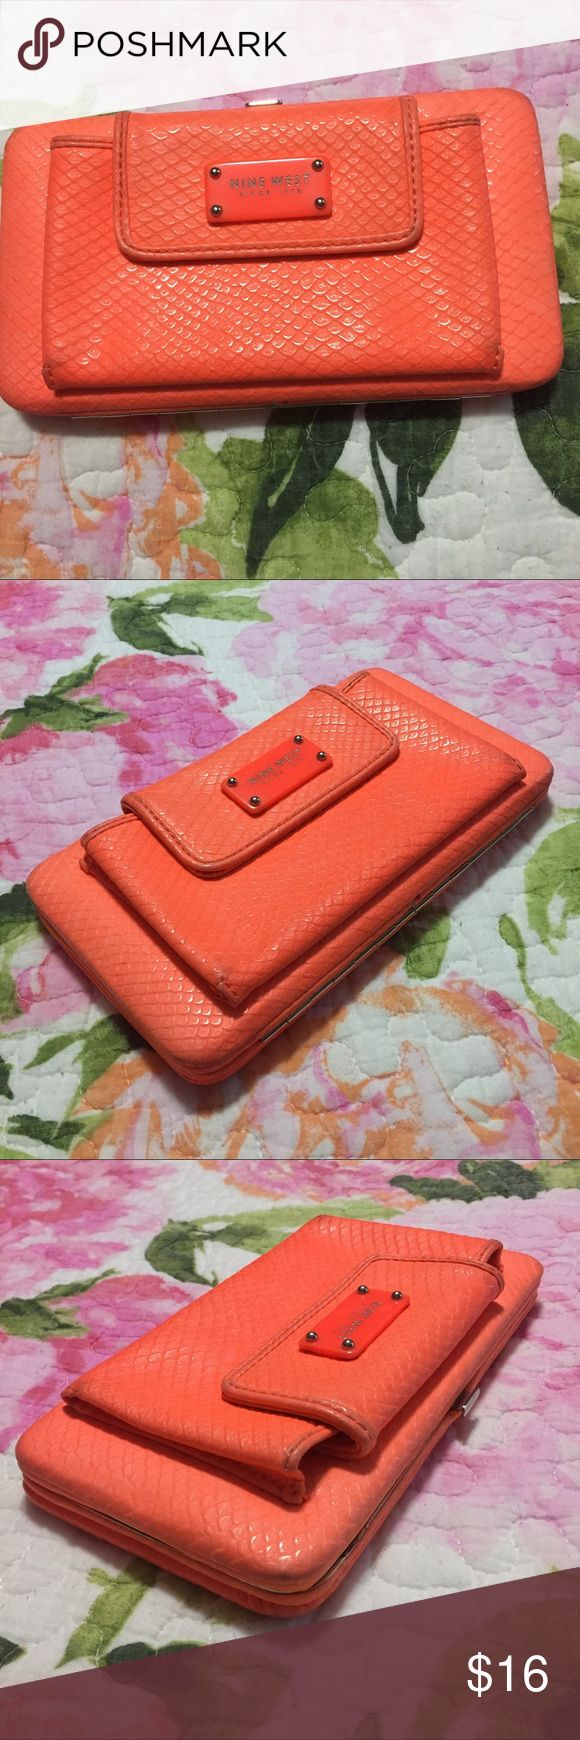 ❗️SALE❗️Nine West Orange Wallet Orange wallet with snake like print. Outside pocket. Gray color on inside, with five card slots, one zipper pocket and two folds on the side. On inside of pockets it has a high heels pattern. Good condition with signs of wear. Chain missing. Nine West Bags Wallets